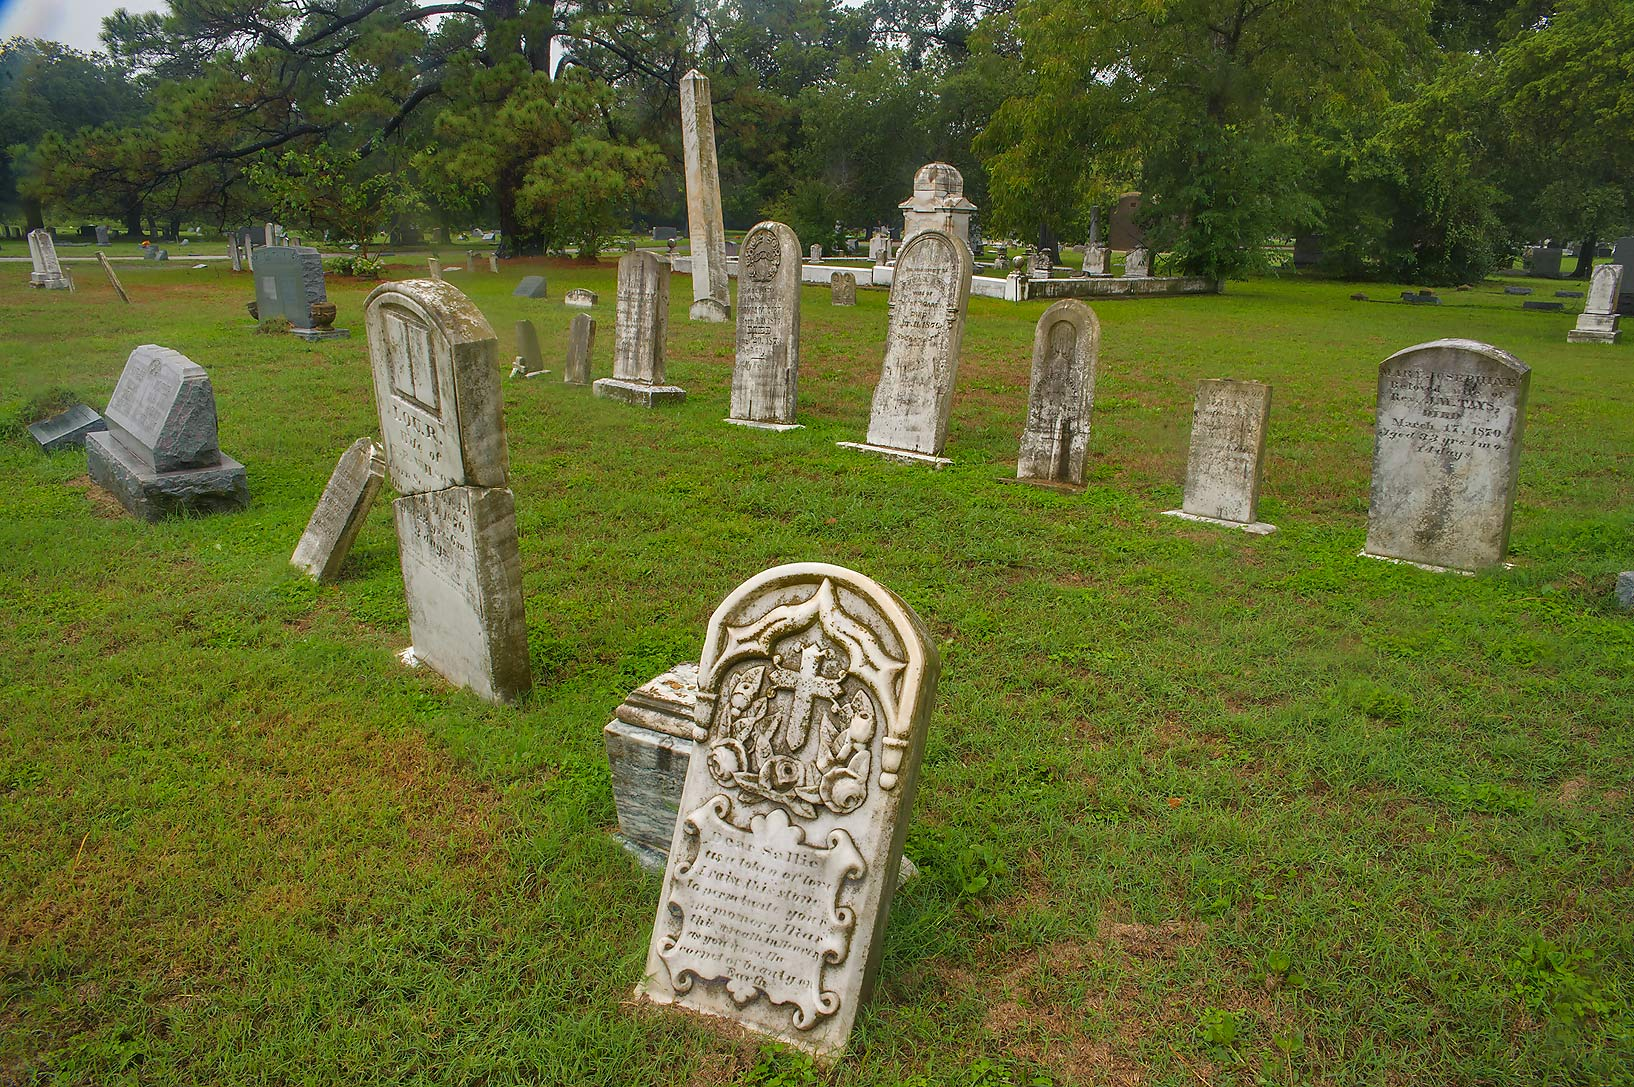 Marble tombstones in City Cemetery at rain. Bryan, Texas